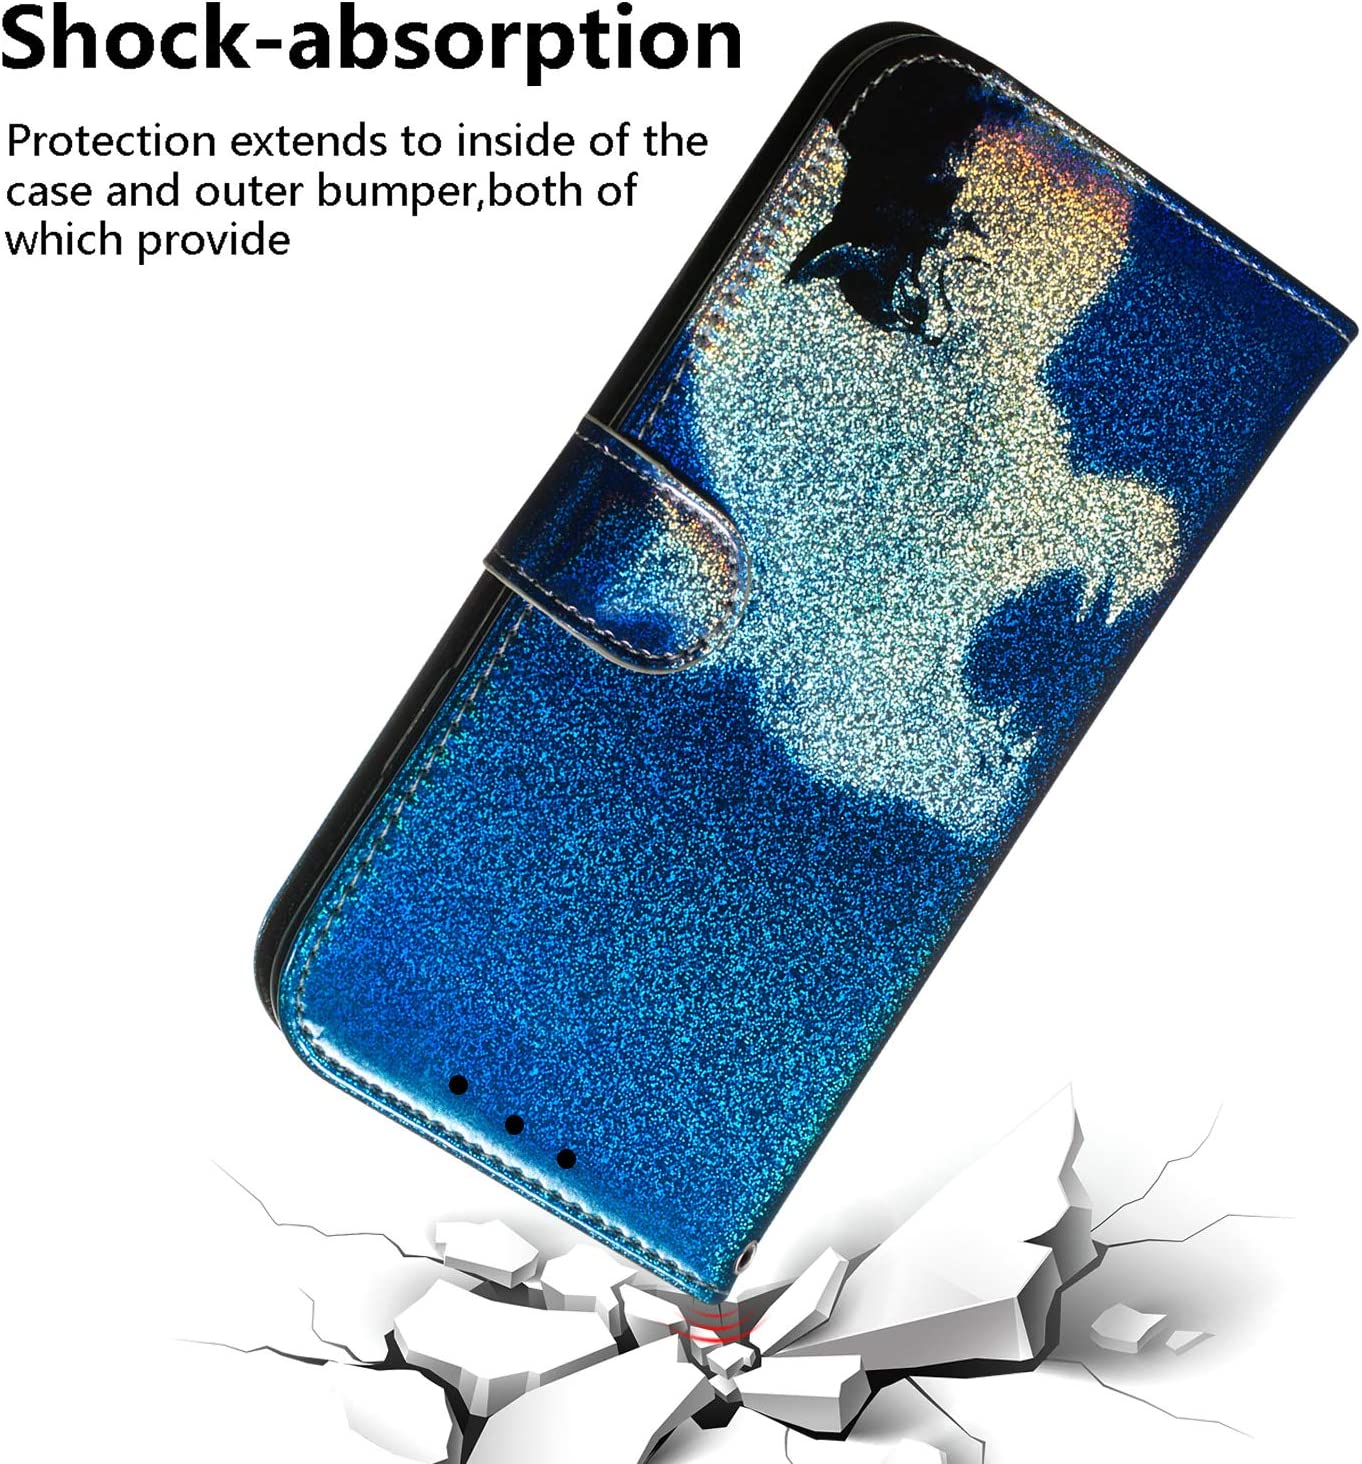 with Card Holder Side Pocket Kickstand S10 Plus NEXCURIO Wallet Case for Samsung Galaxy S10+ - NETXI150384 N4 S10Plus Shockproof Leather Flip Cover Case for Galaxy S10+